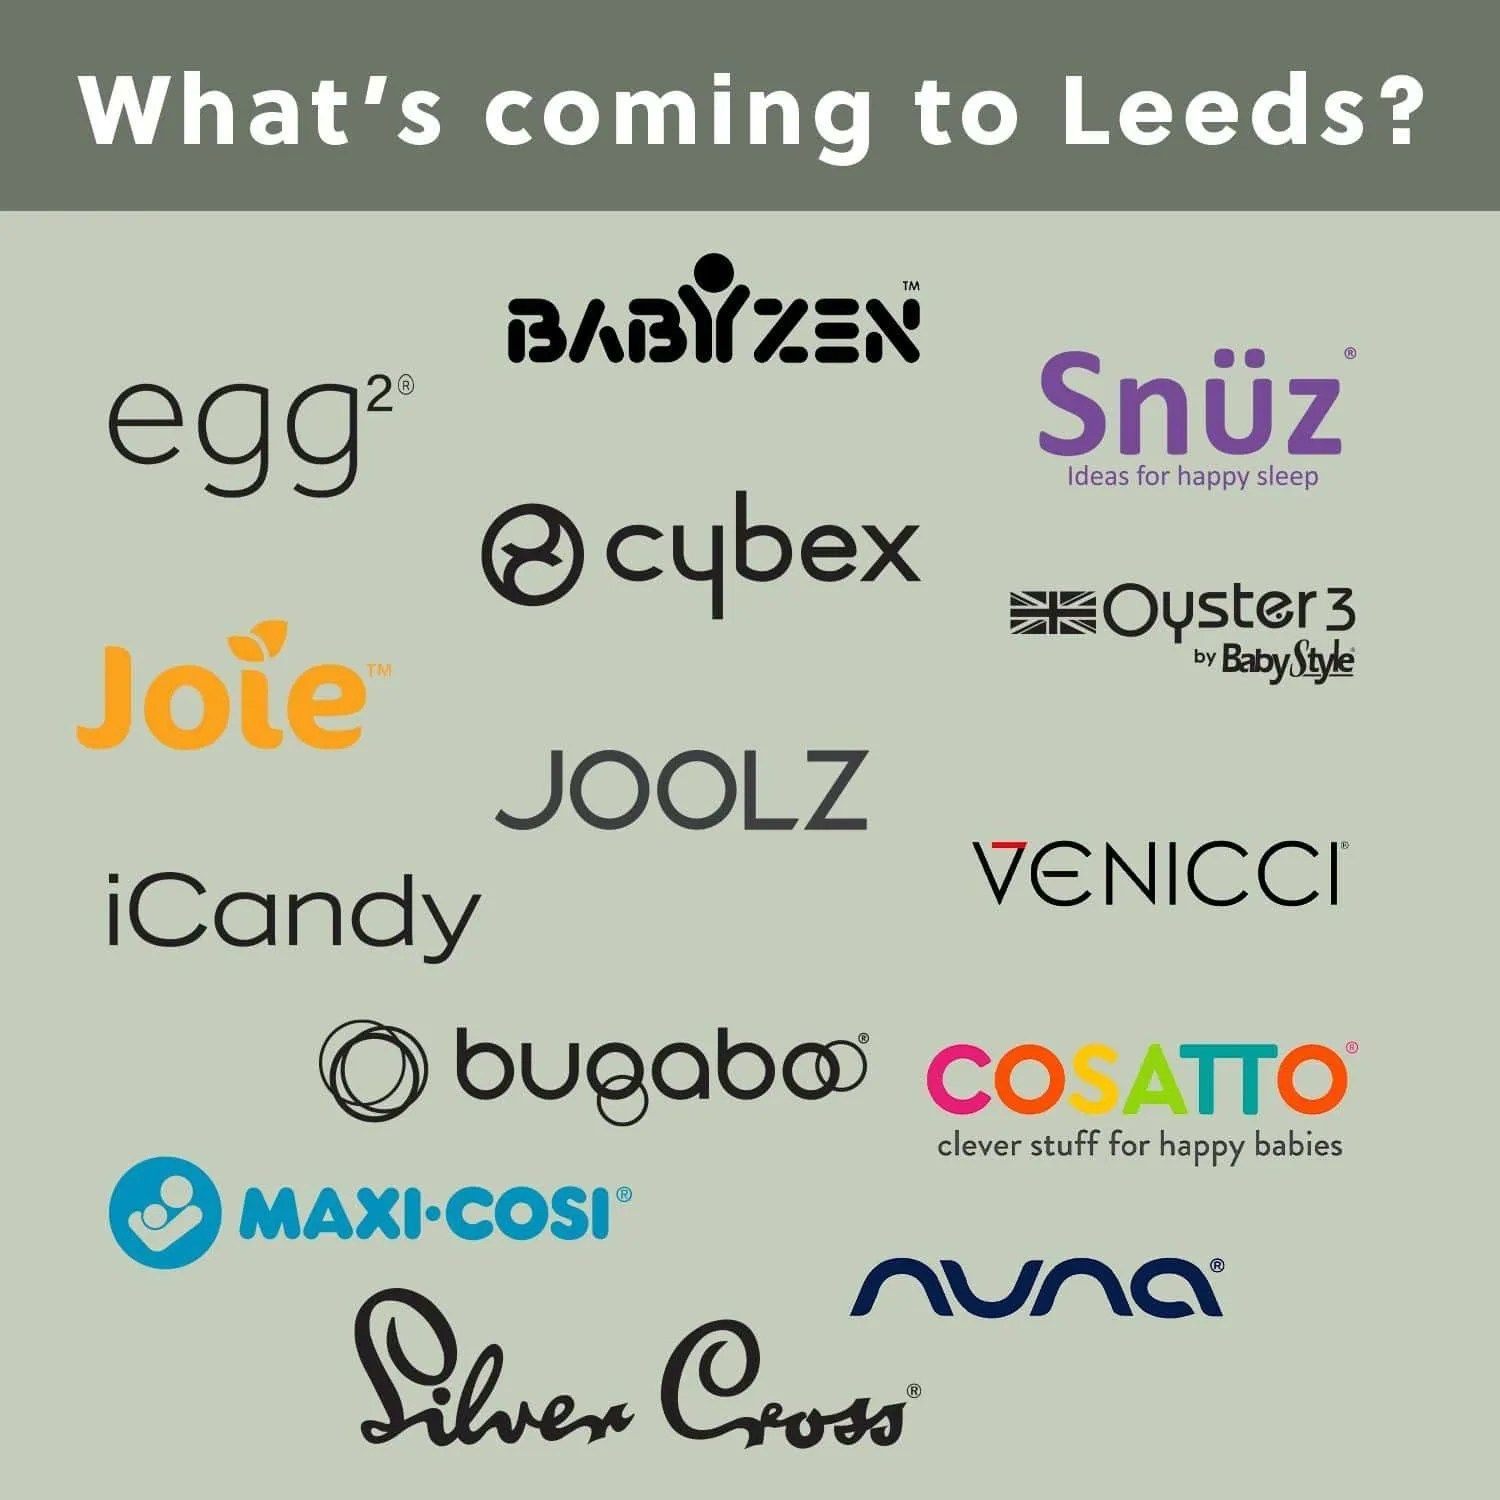 whats coming to leeds